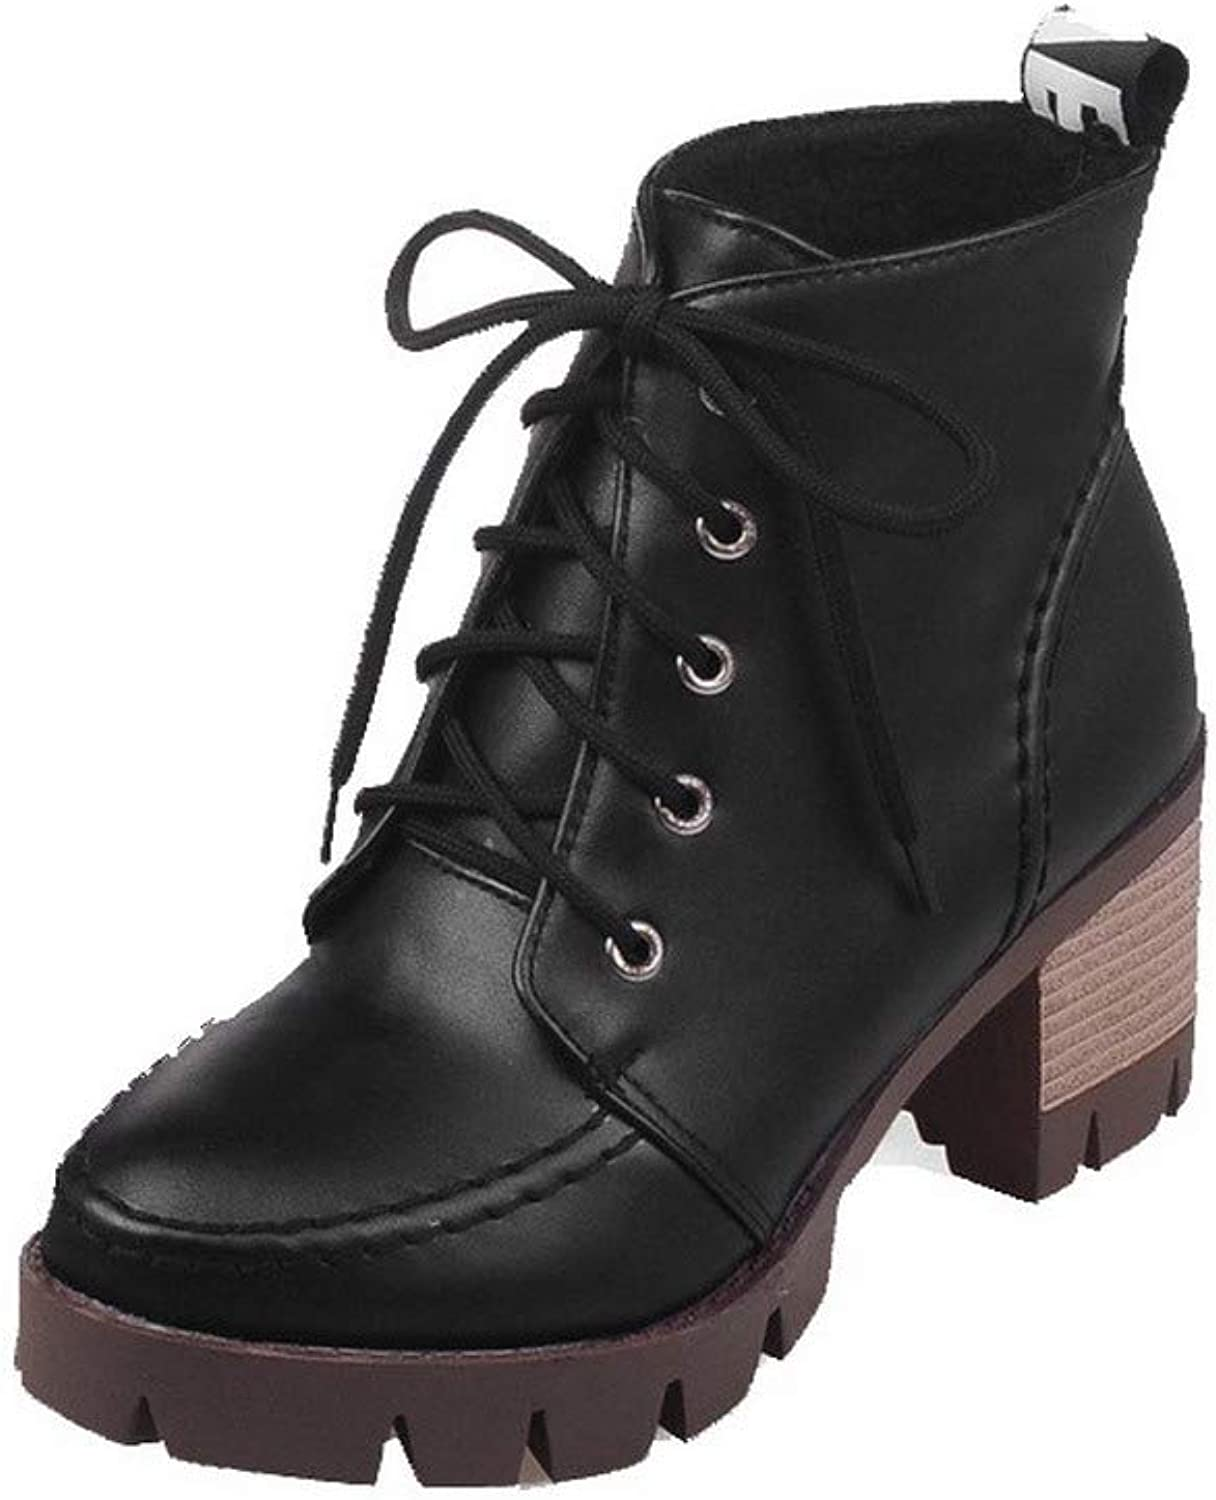 WeenFashion Women's Kitten-Heels Pu Low-Top Solid Lace-Up Boots, AMGXX124180